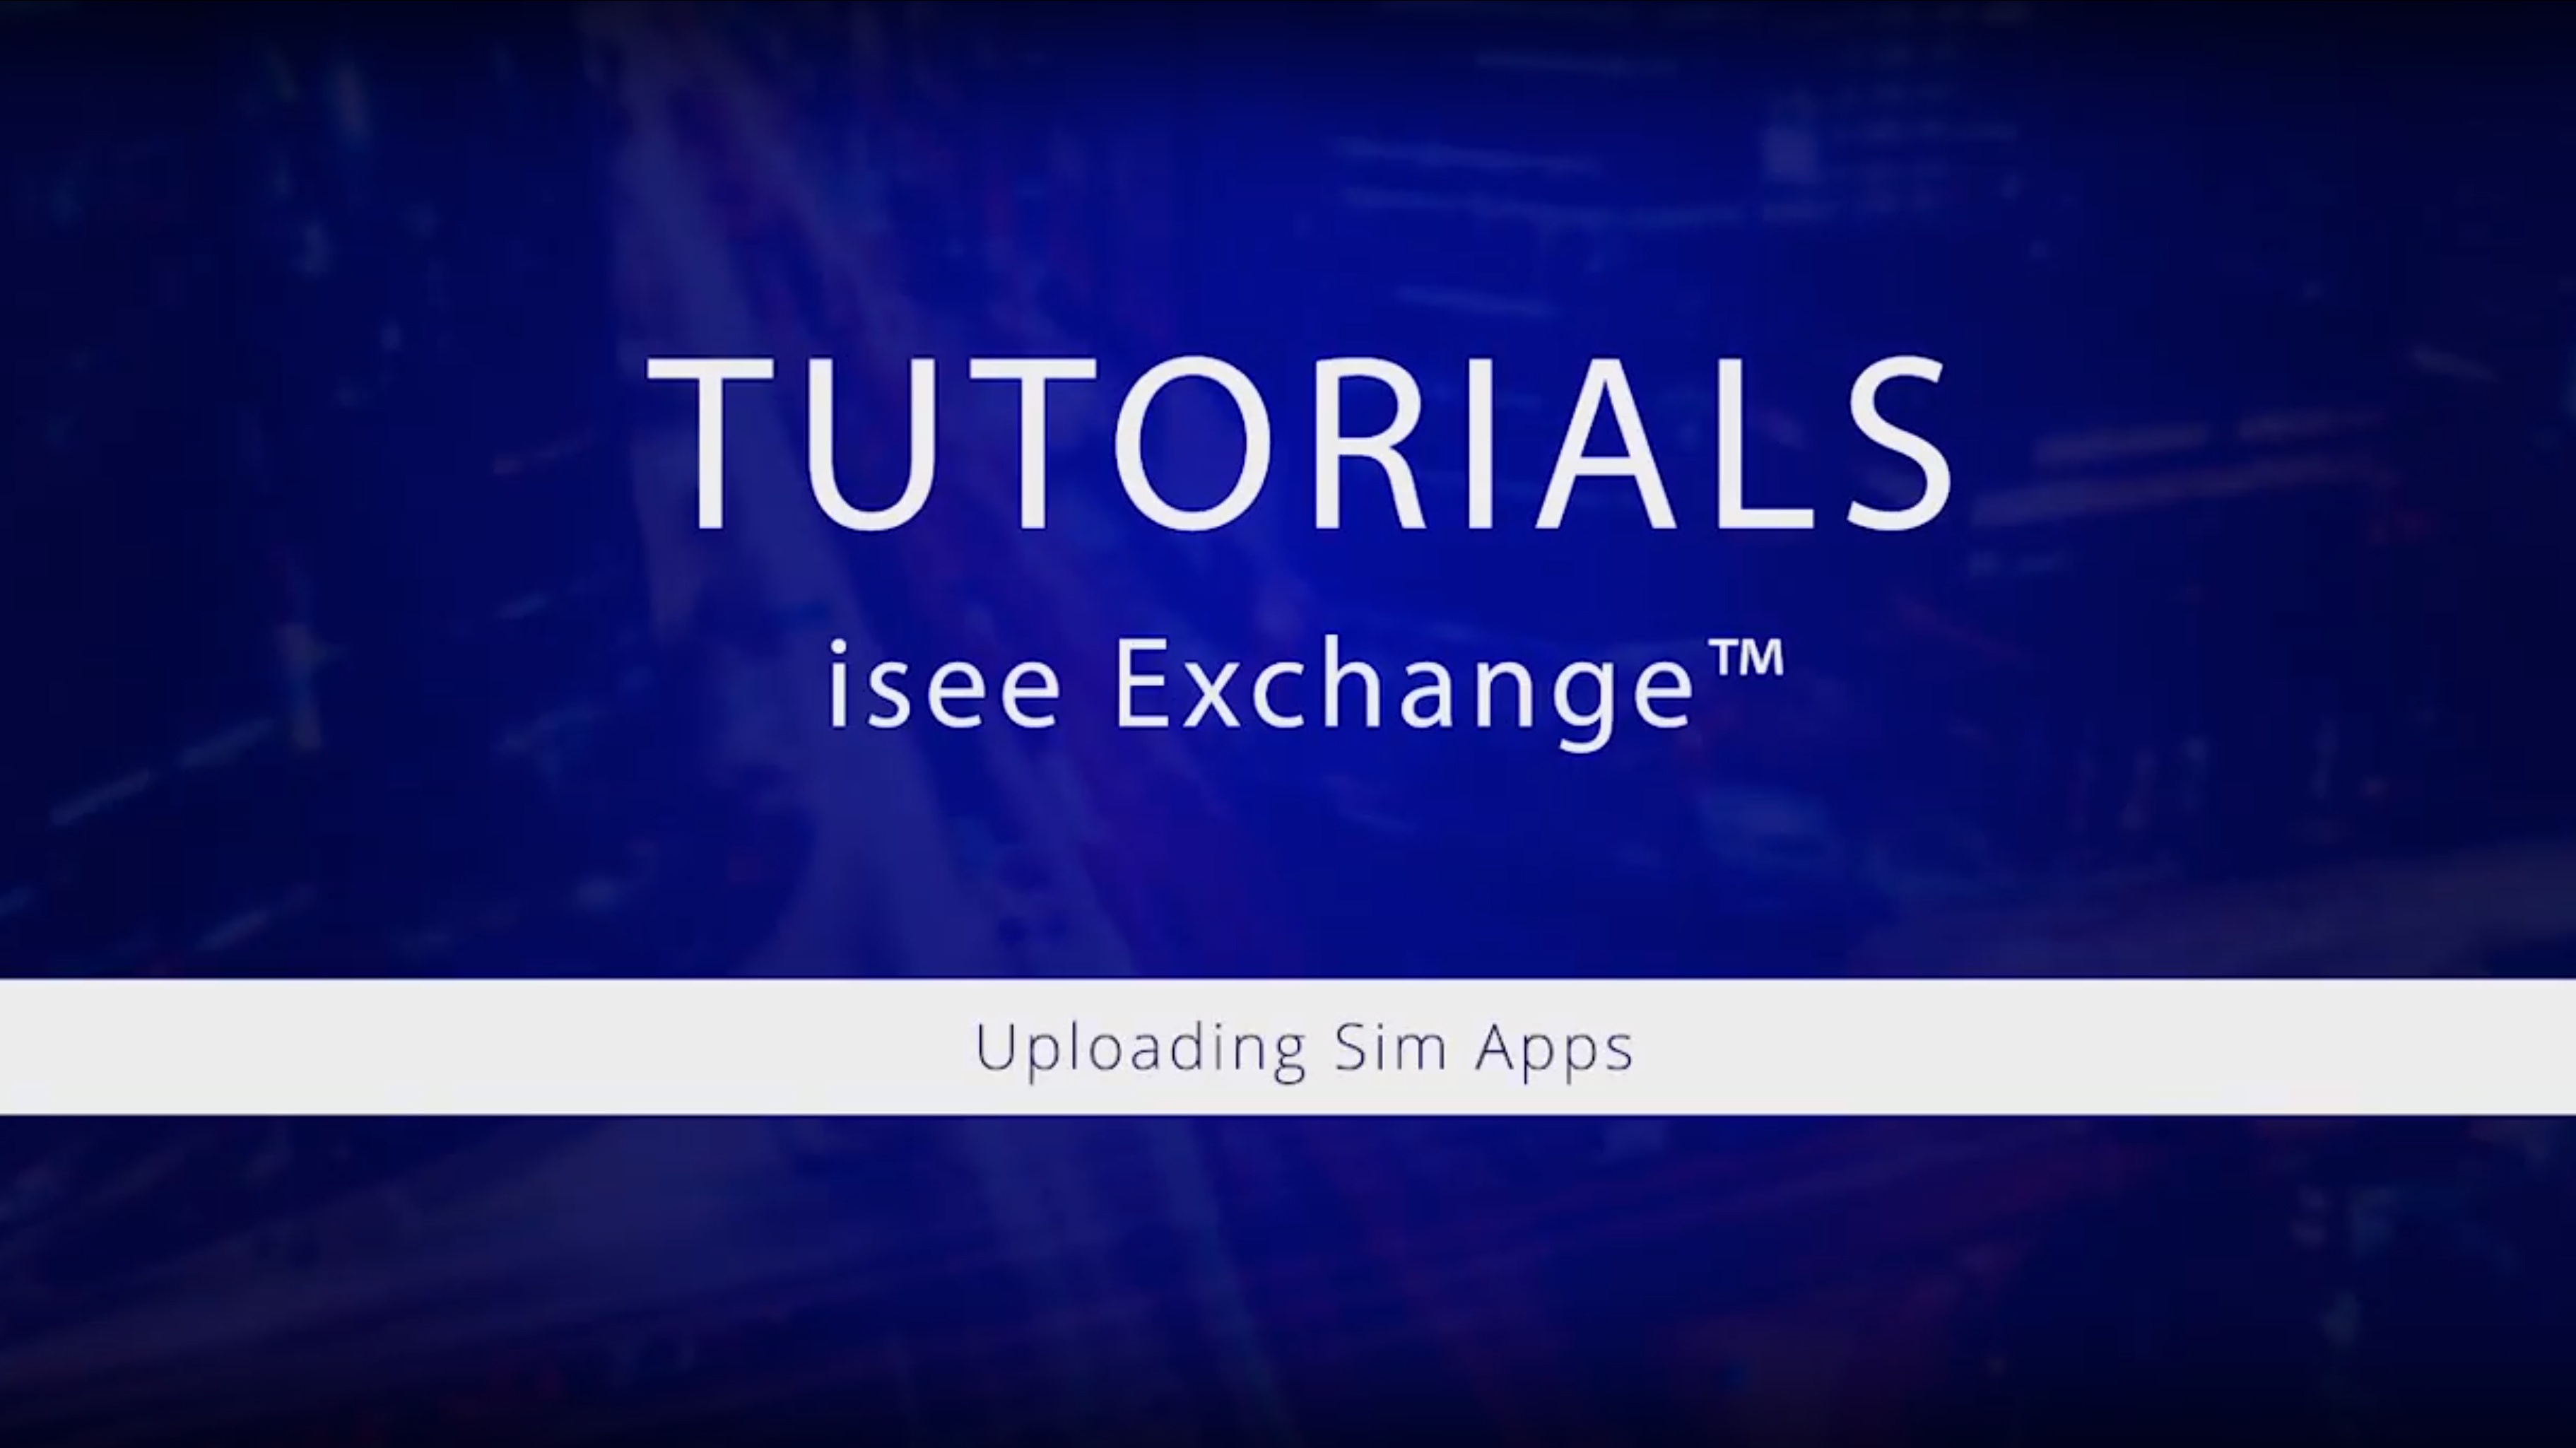 Watch isee Exchange Tutorials: Uploading Sim Apps (Finished Interfaces)